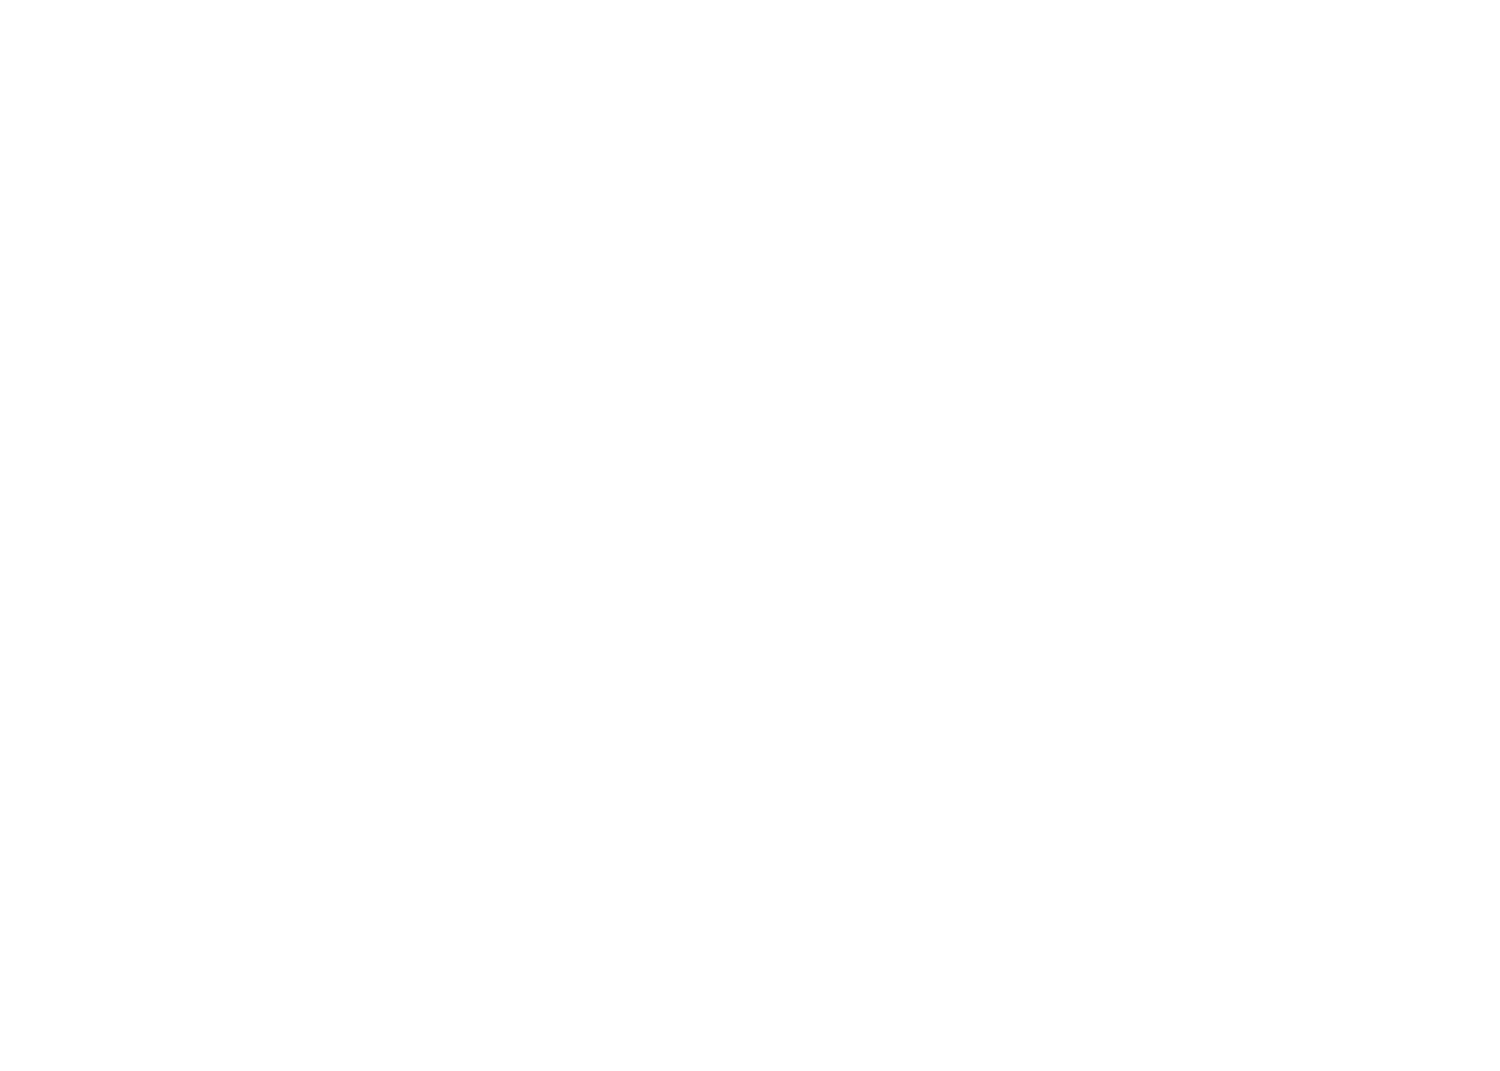 THE DANCEOFF